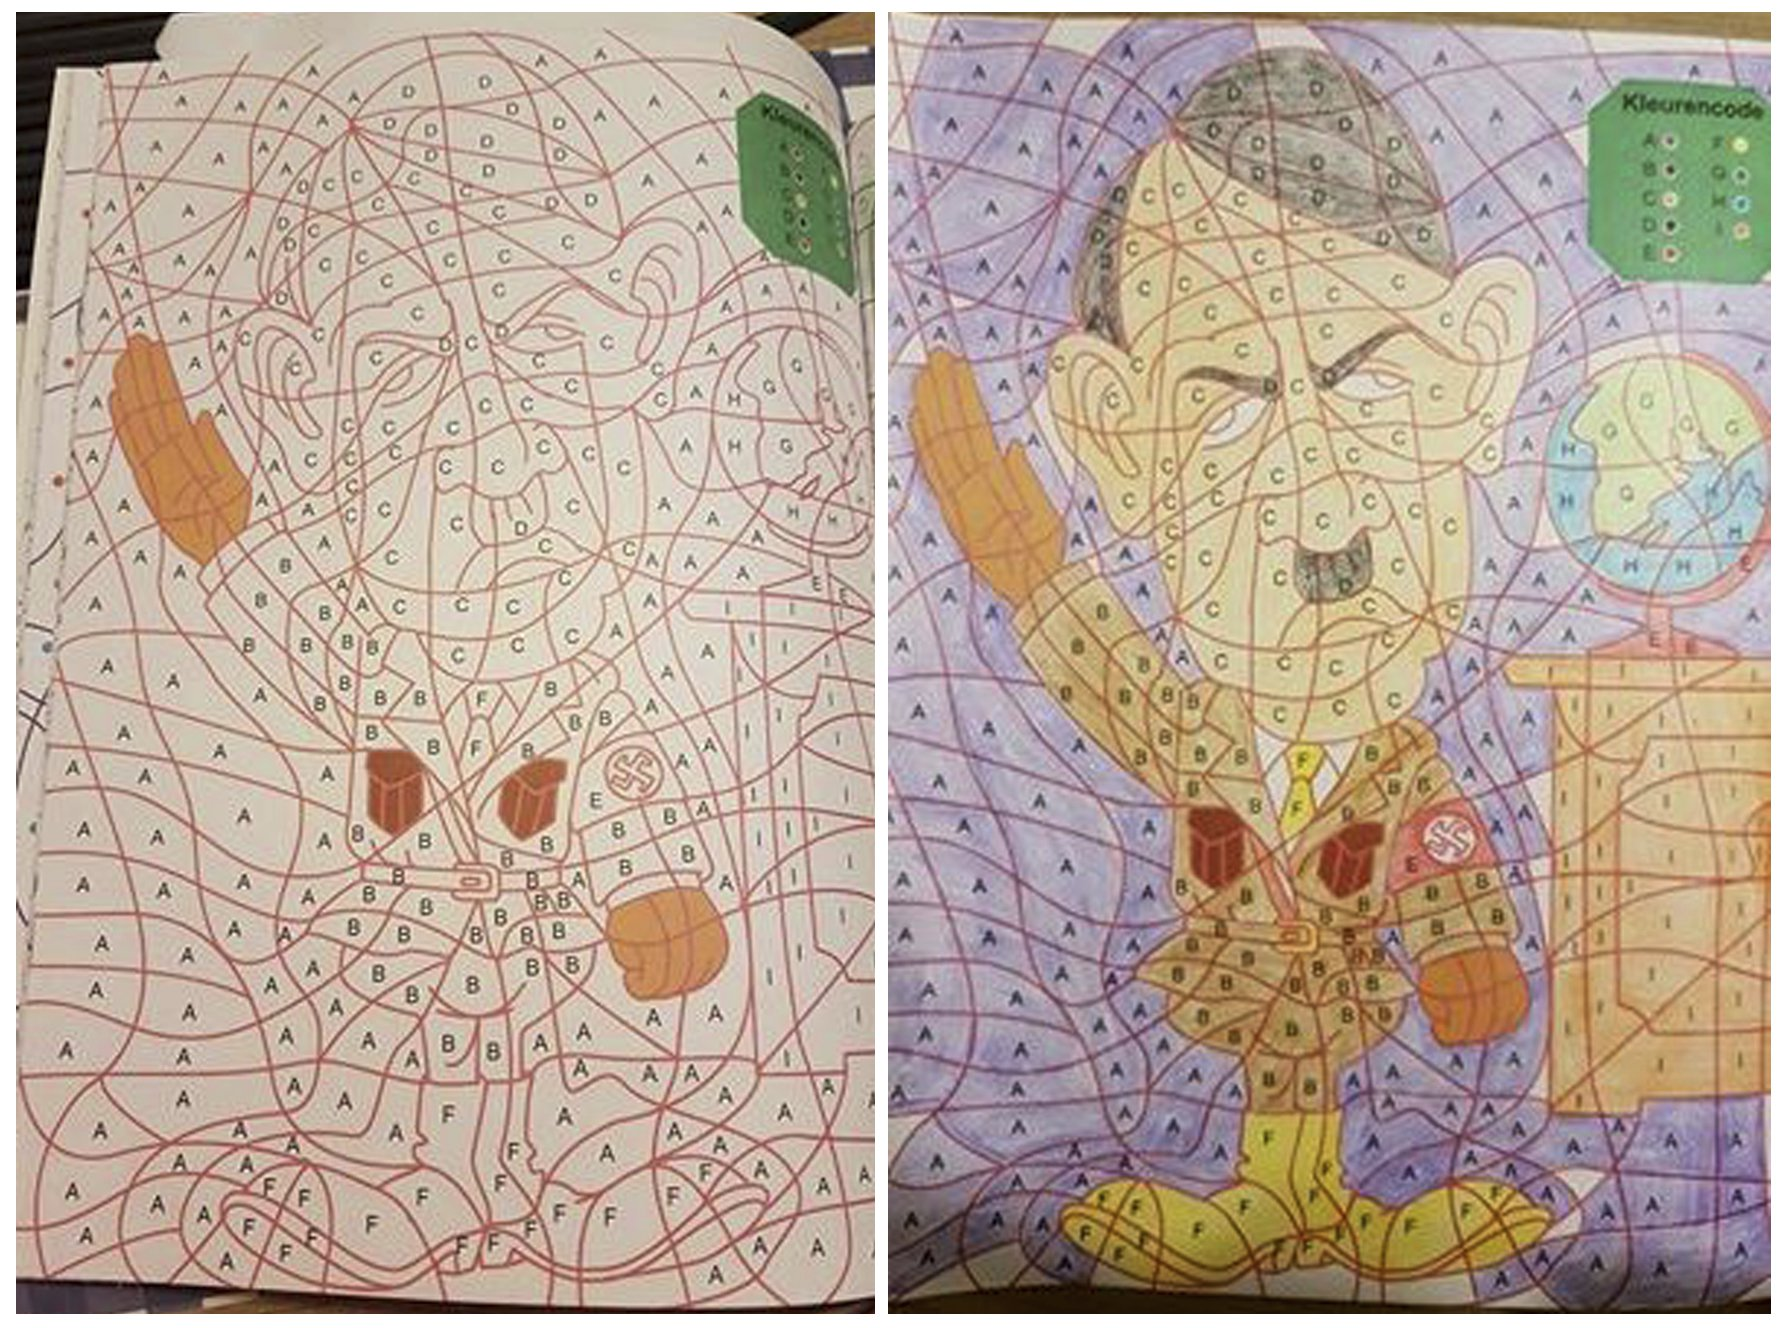 Children's colouring book accidentally includes picture of Hitler